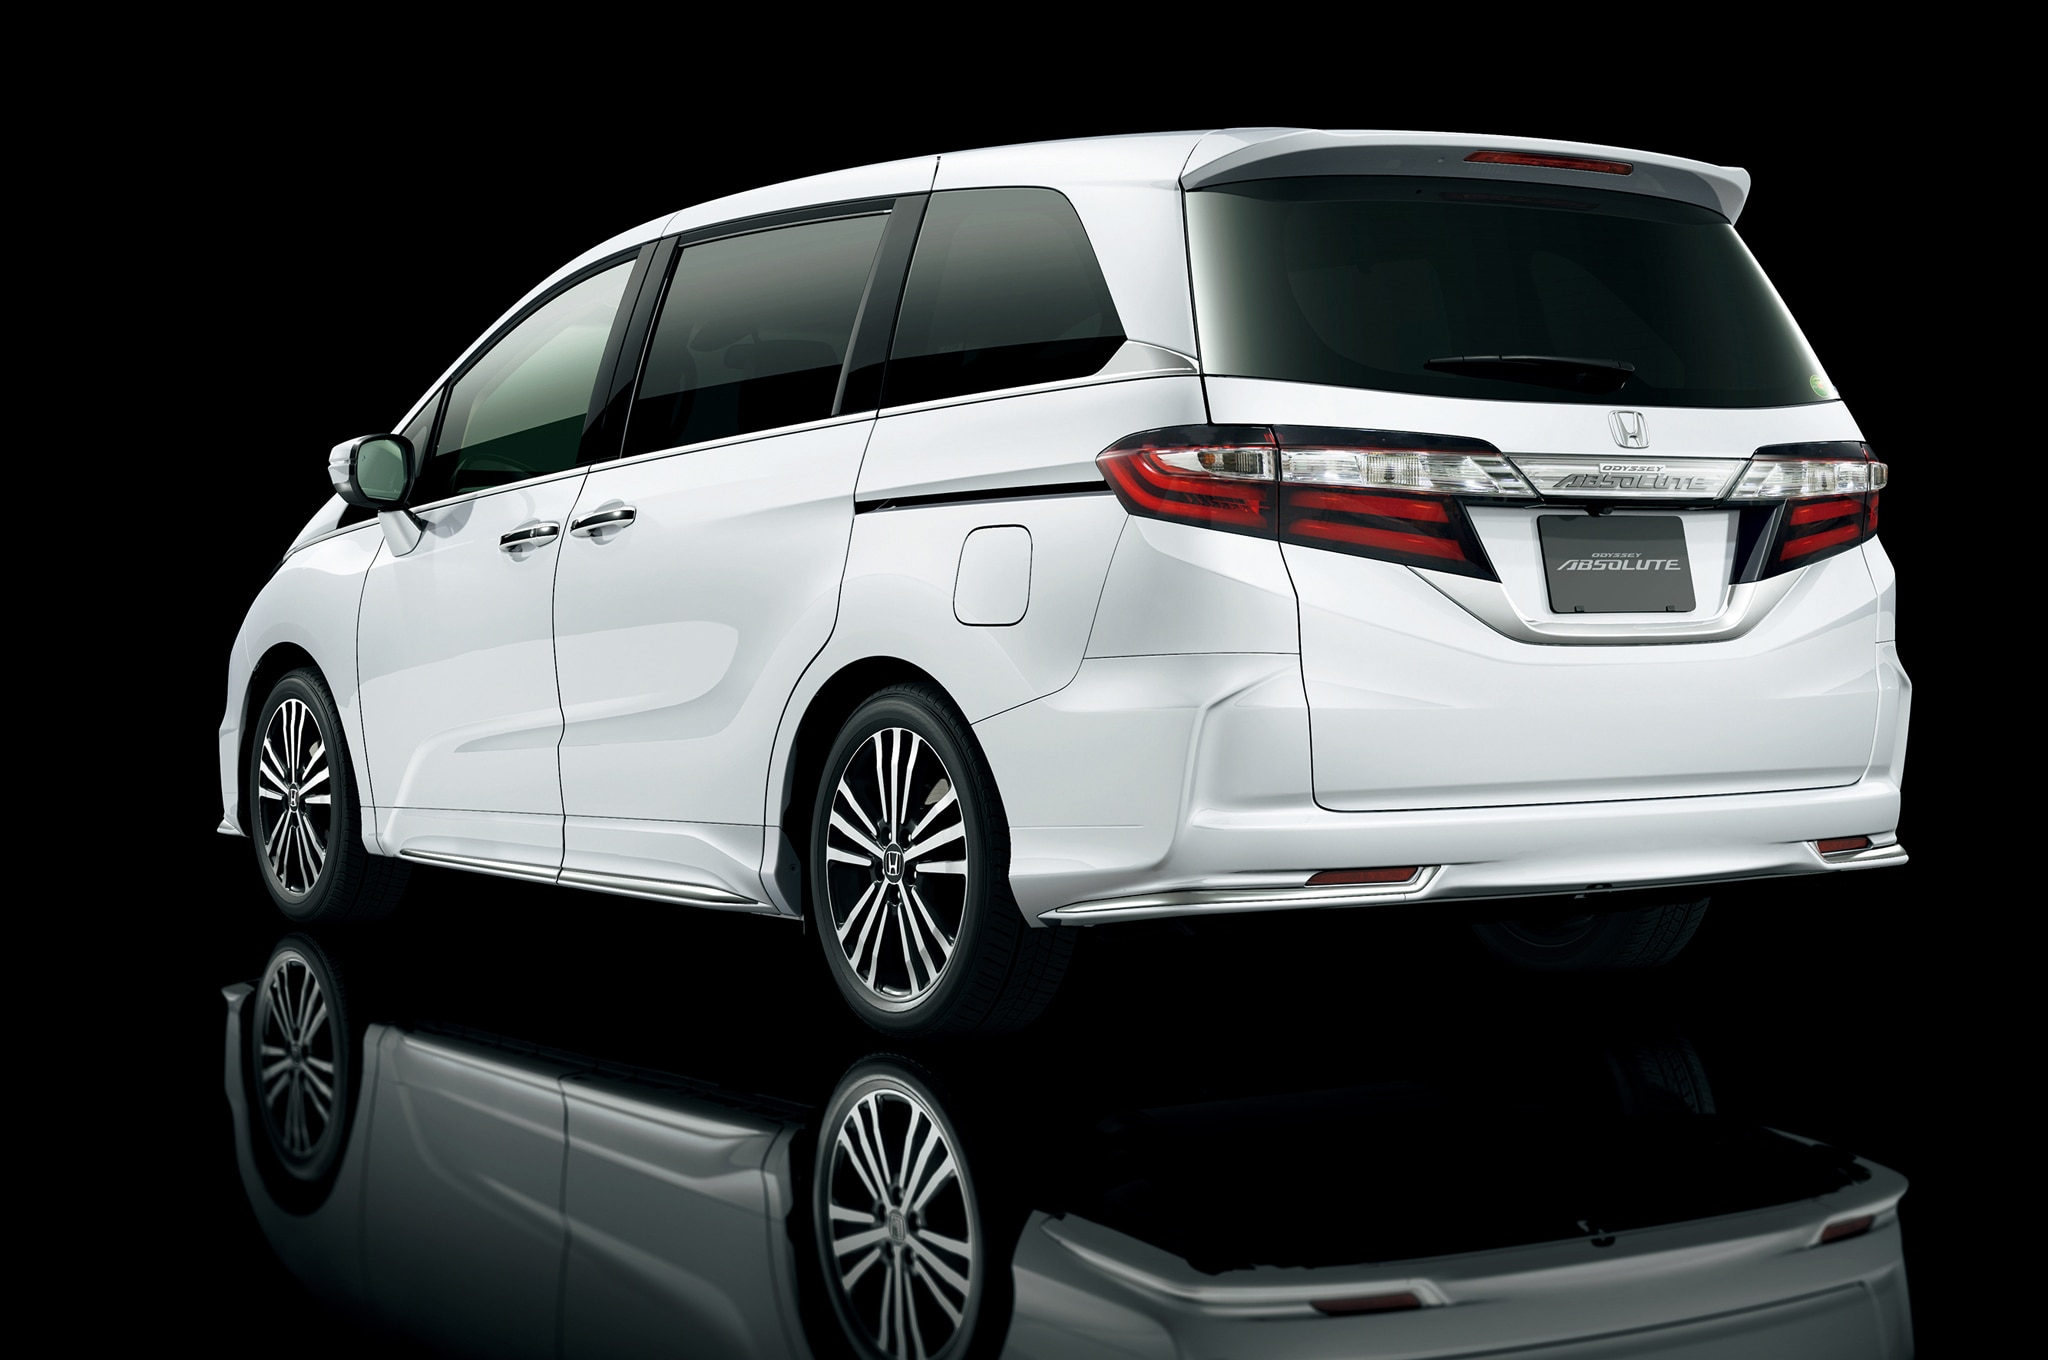 japanese market honda odyssey revealed. Black Bedroom Furniture Sets. Home Design Ideas